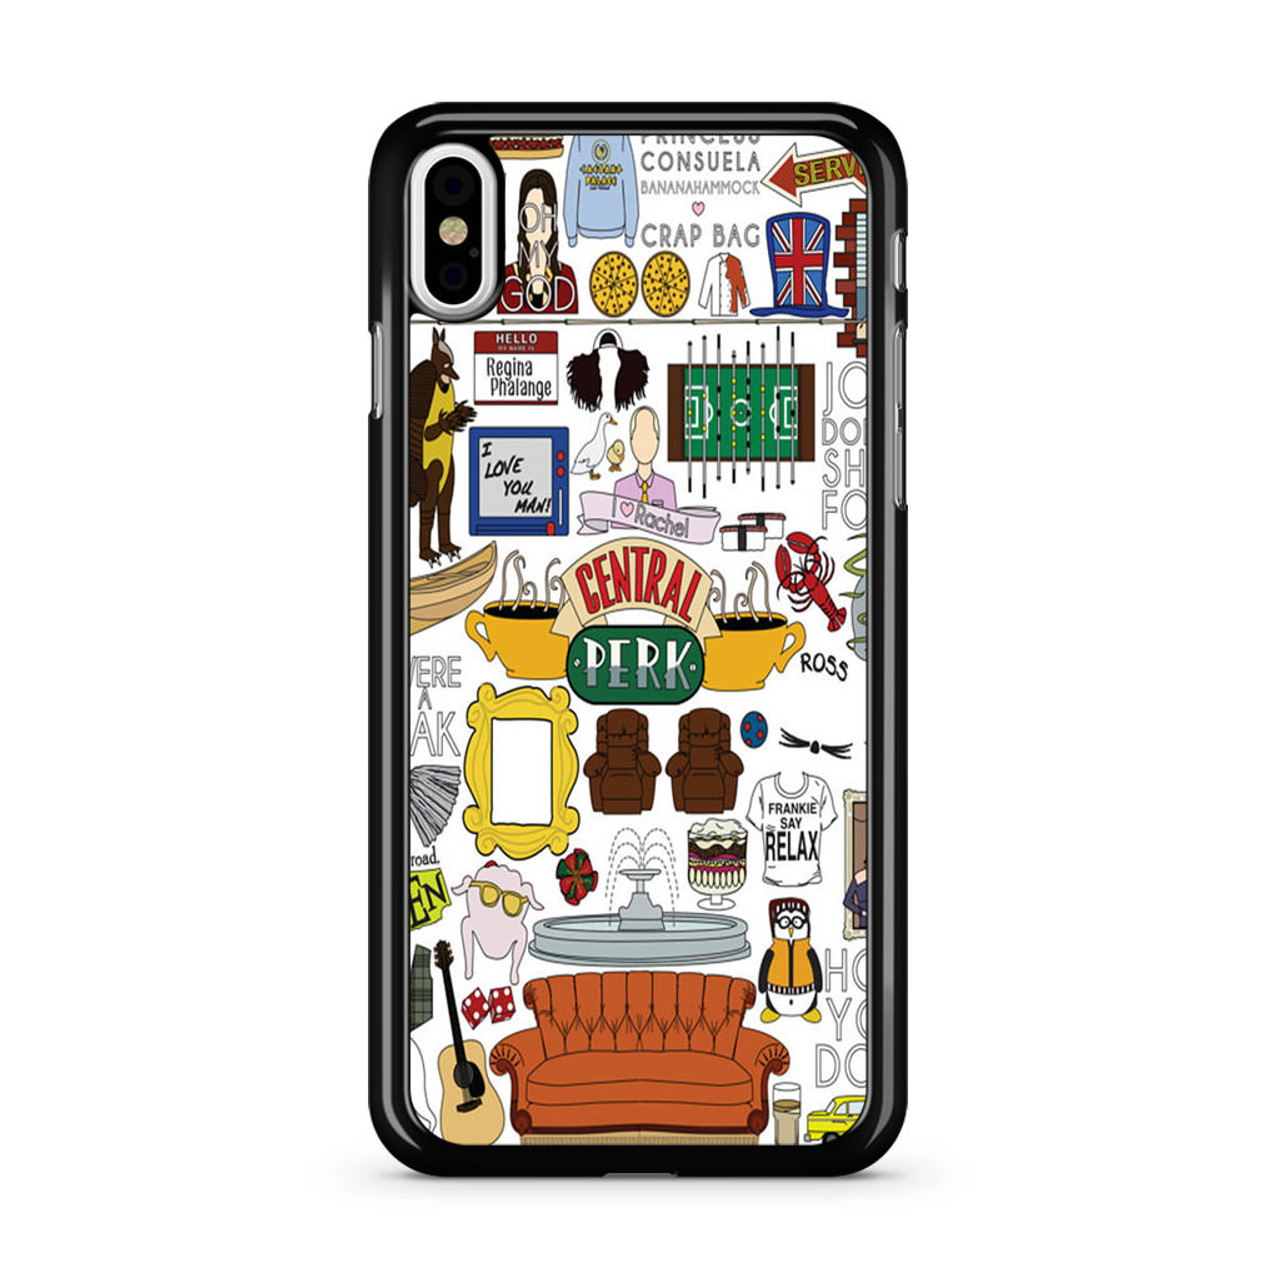 new style 7f46a c4fb9 Friends Tv Show Central Perk iPhone XS Max Case